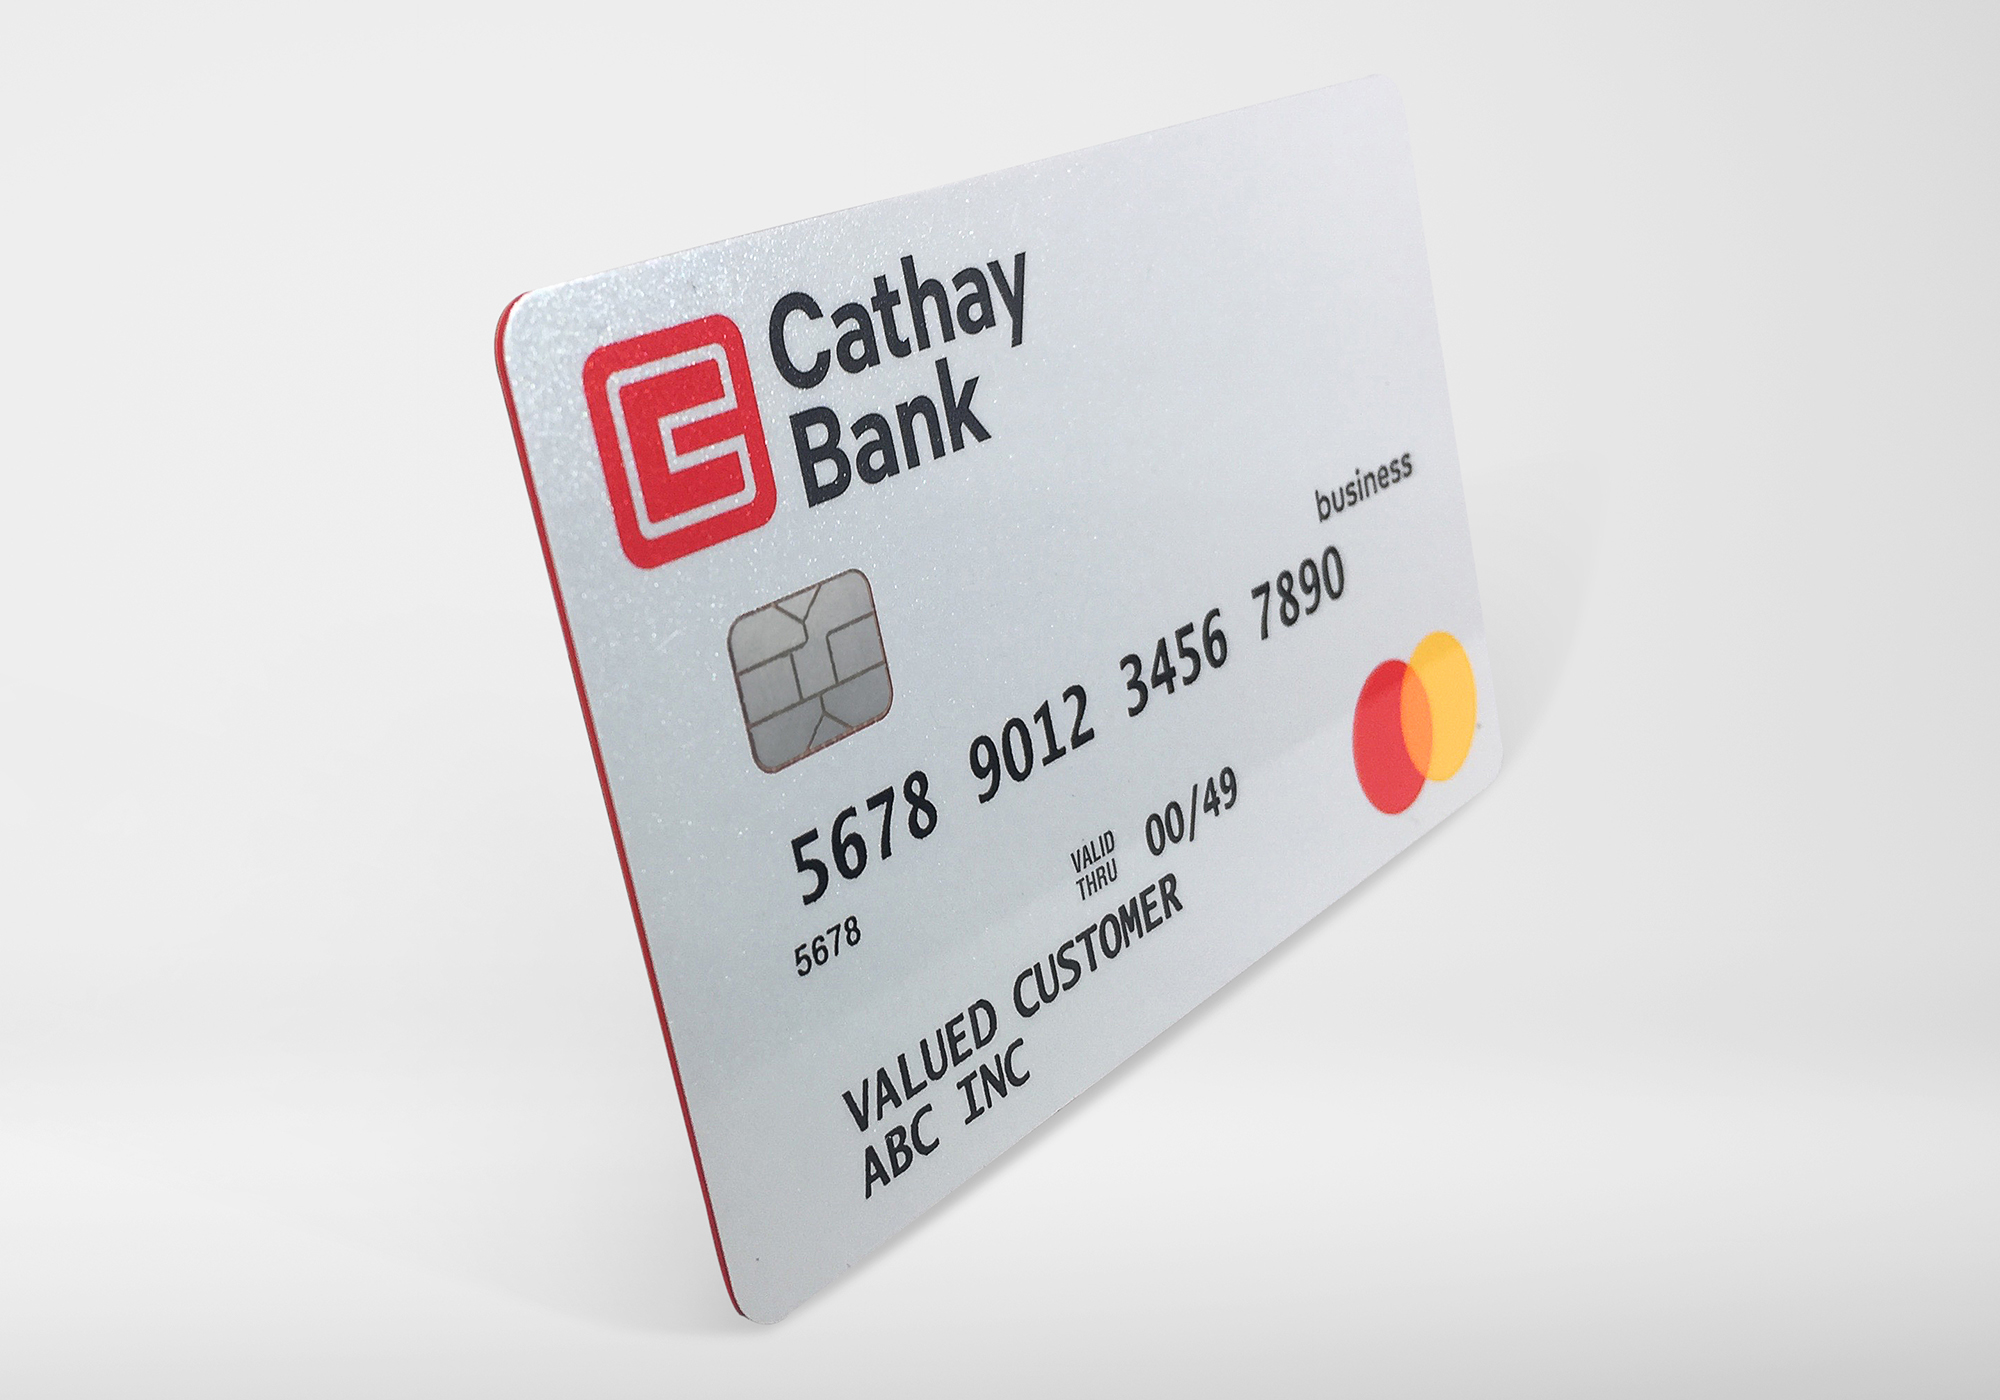 Cathay Bank Business Credit Card